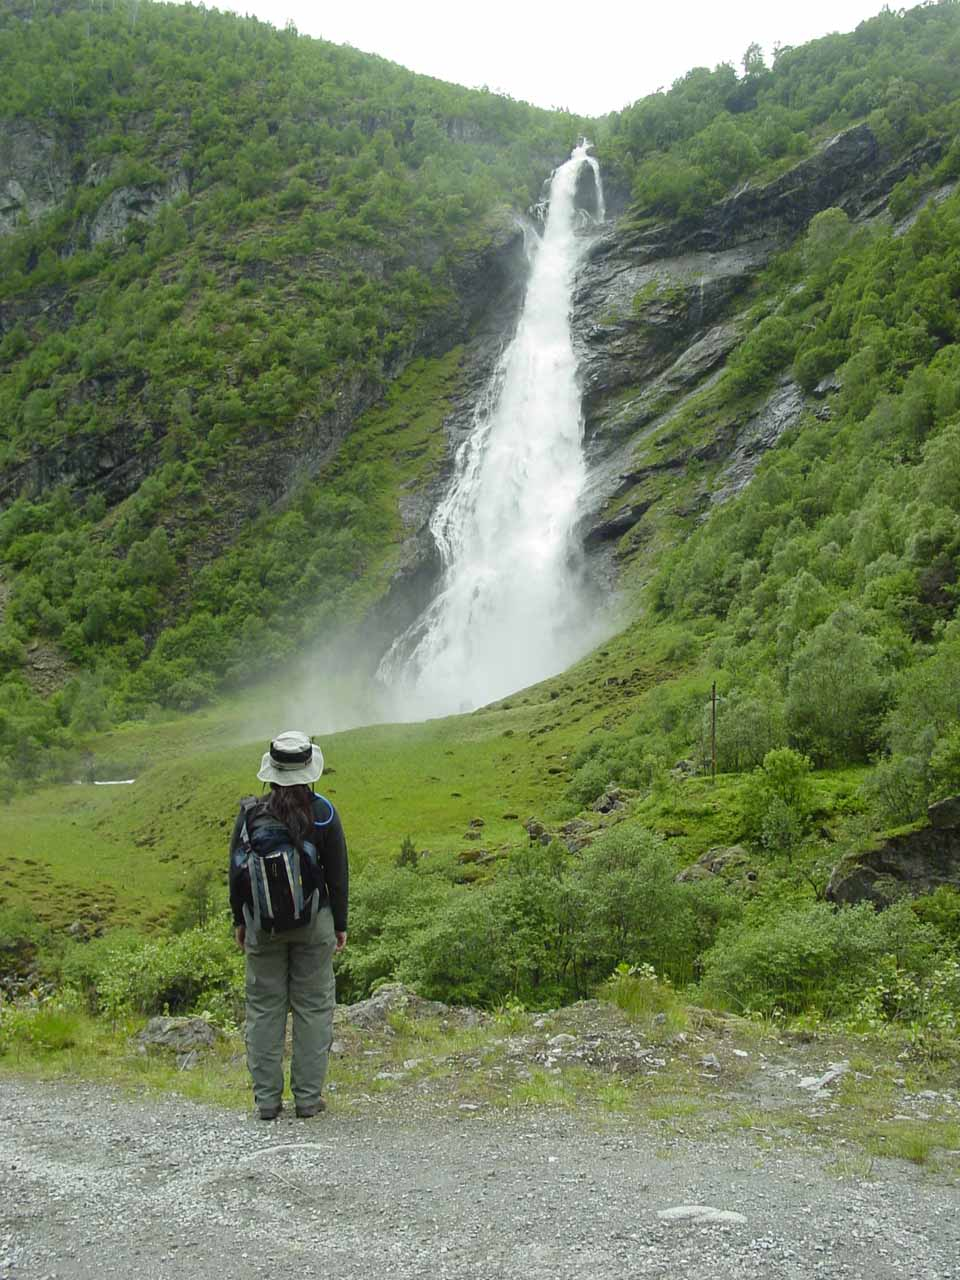 Julie making one last look at Avdalsfossen before we concluded the hike